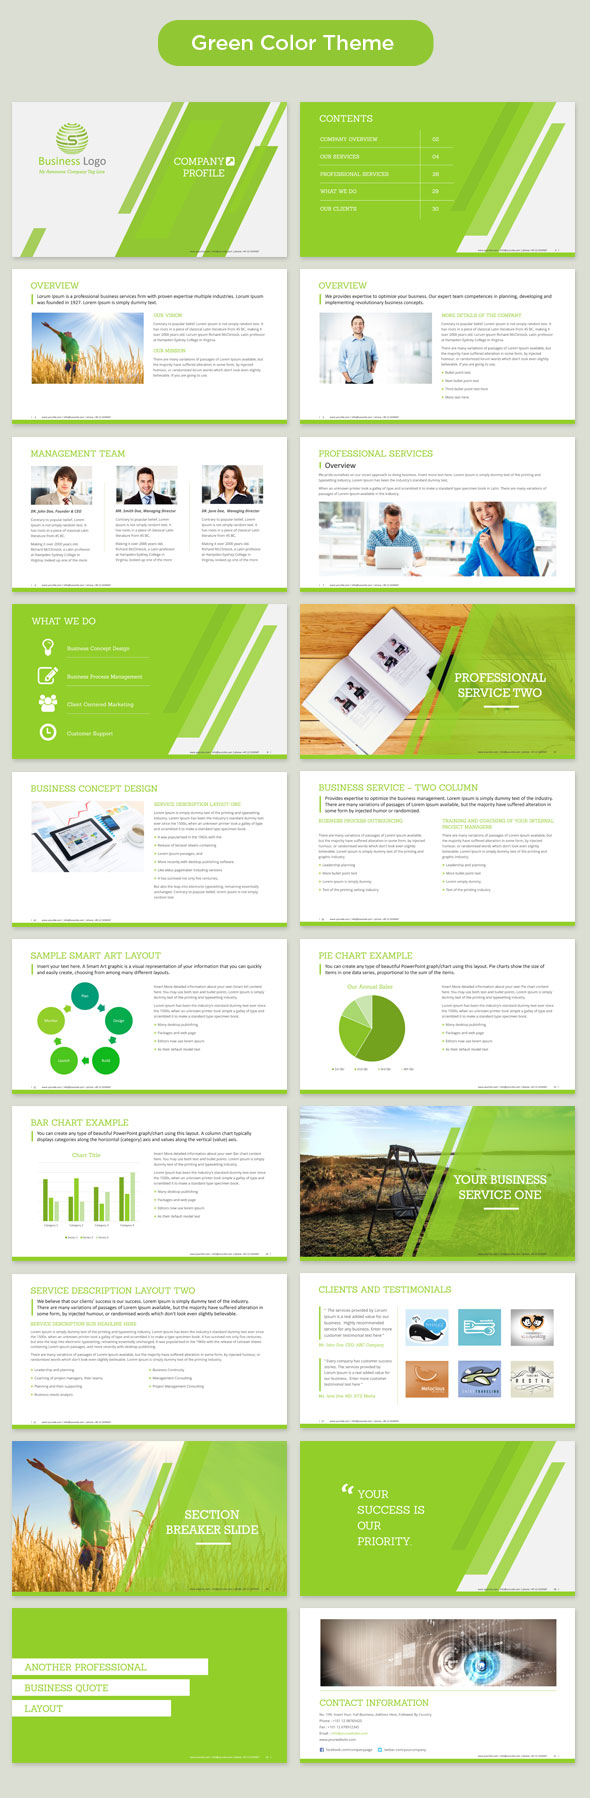 company profile powerpoint template 350 master ppt slide templates